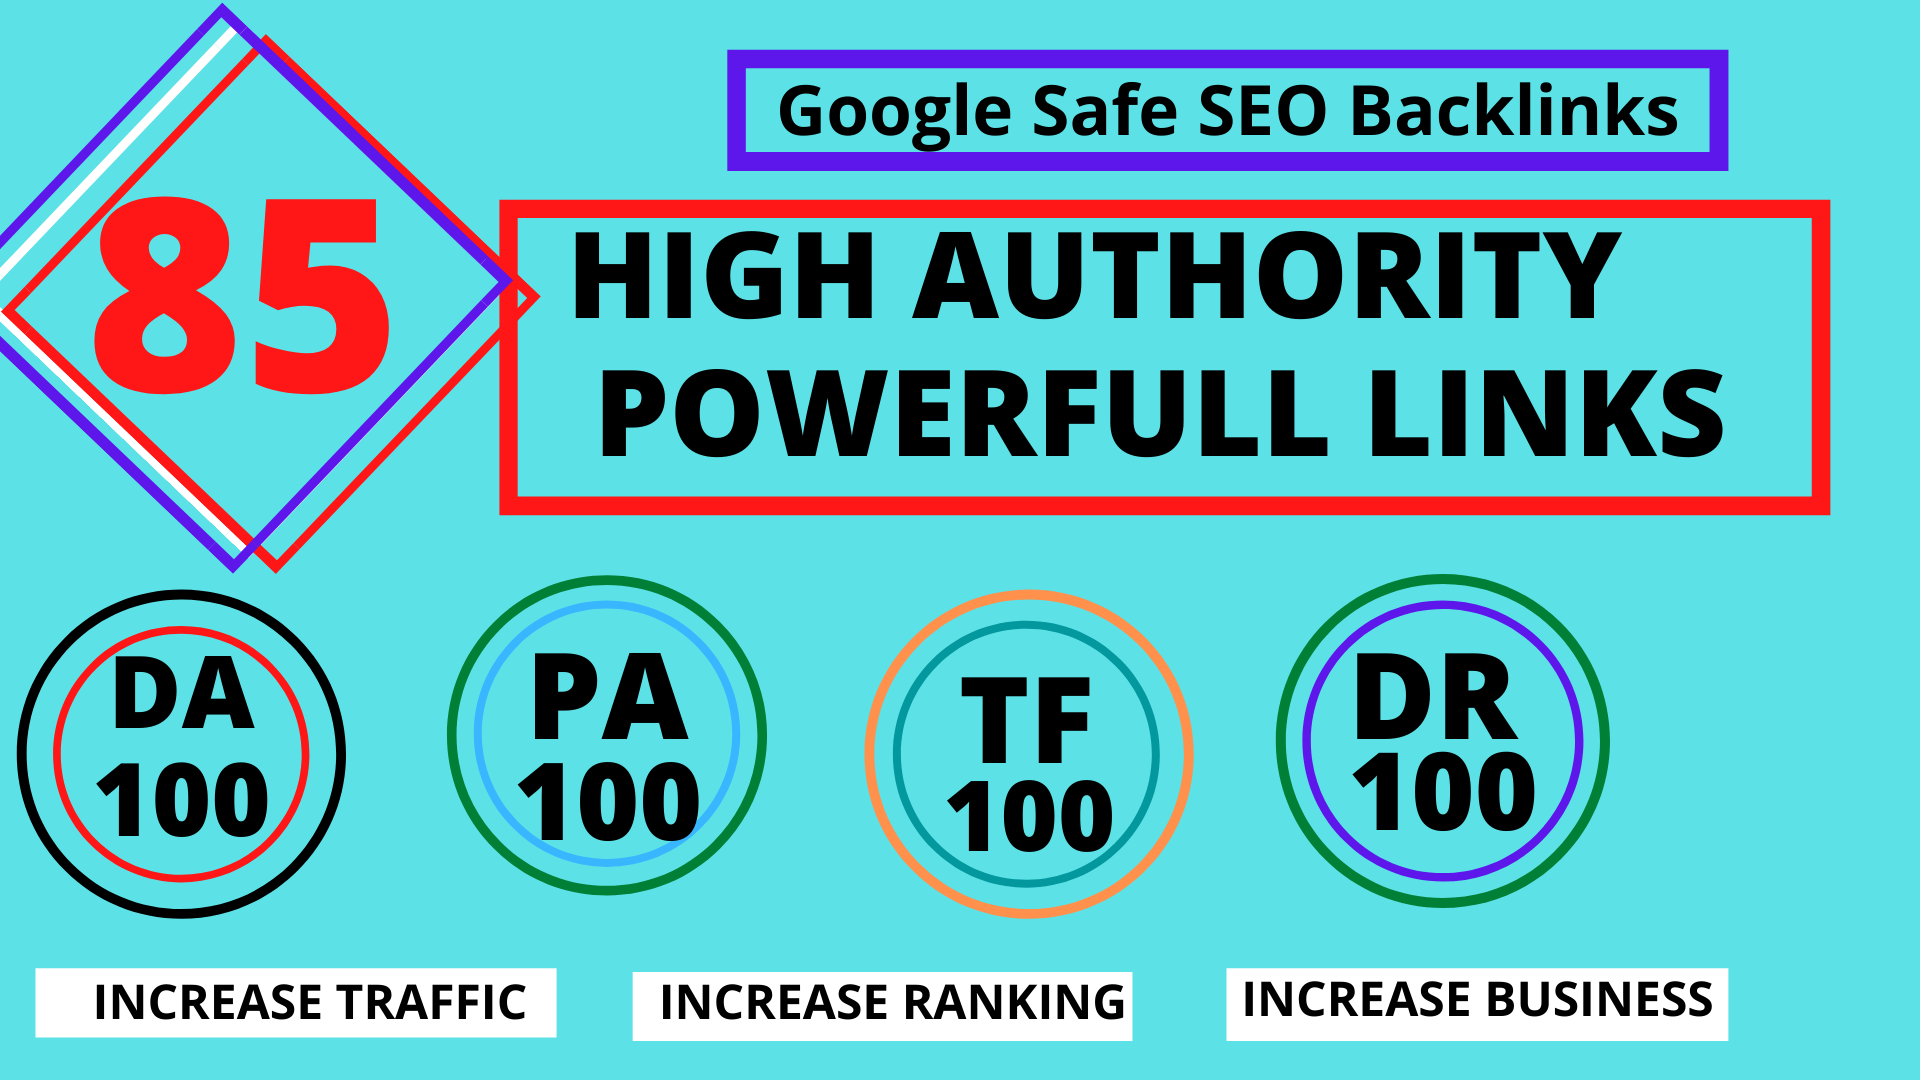 TOP OFFER-Build 85 Unique Domain SEO Backlinks On TF100 DA100 Sites